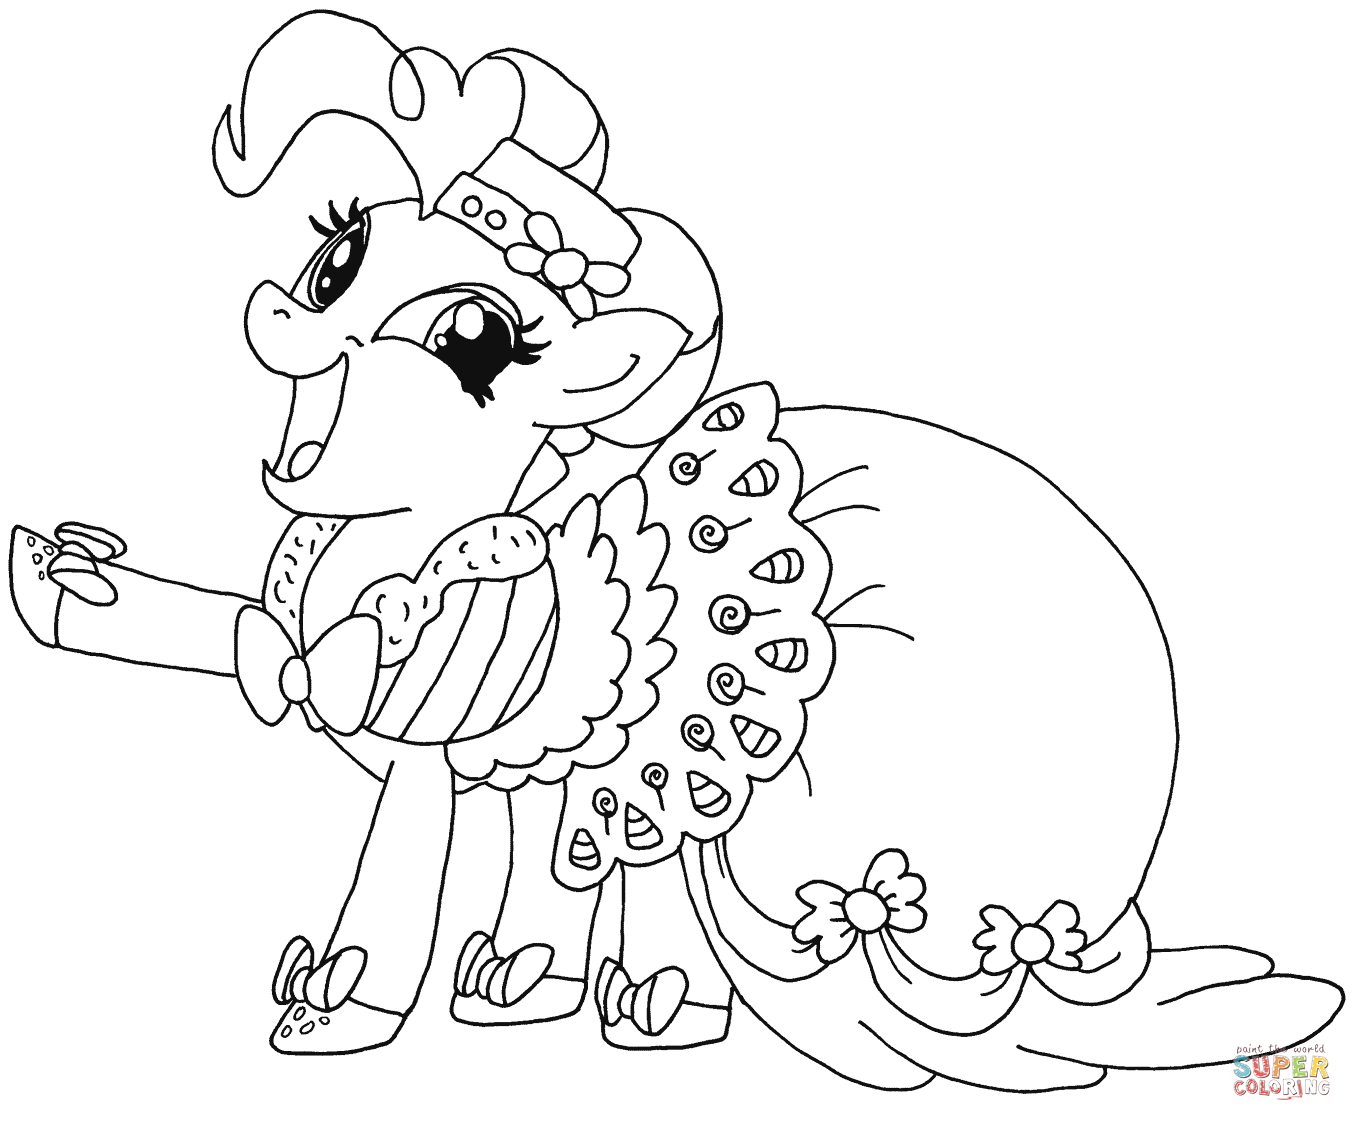 My Little Pony Pinkie Pie from My Little Pony Coloring Page